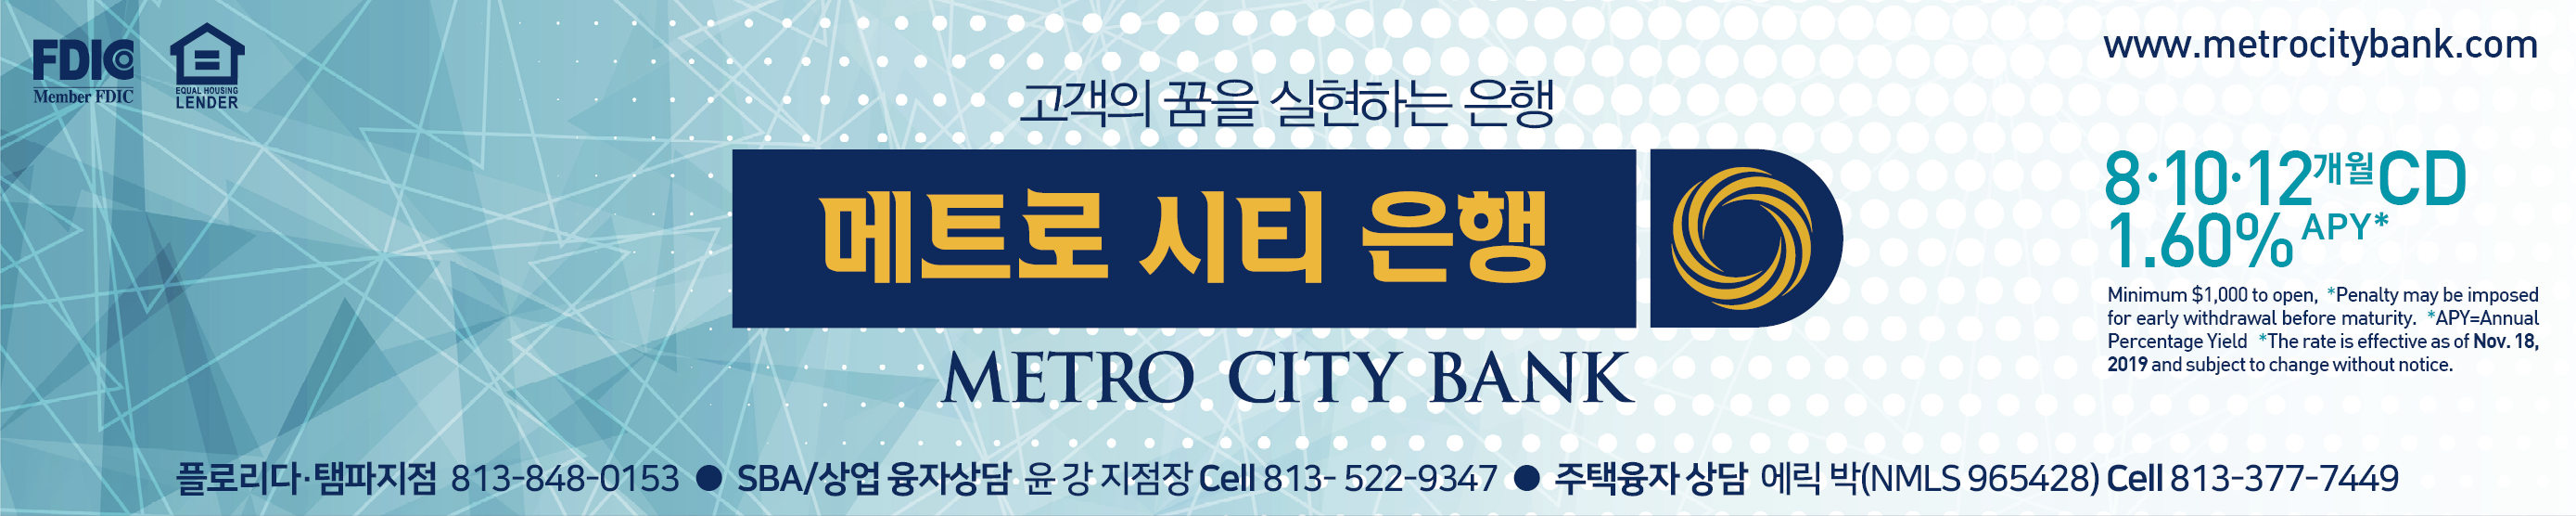 Metro City Bank Ad